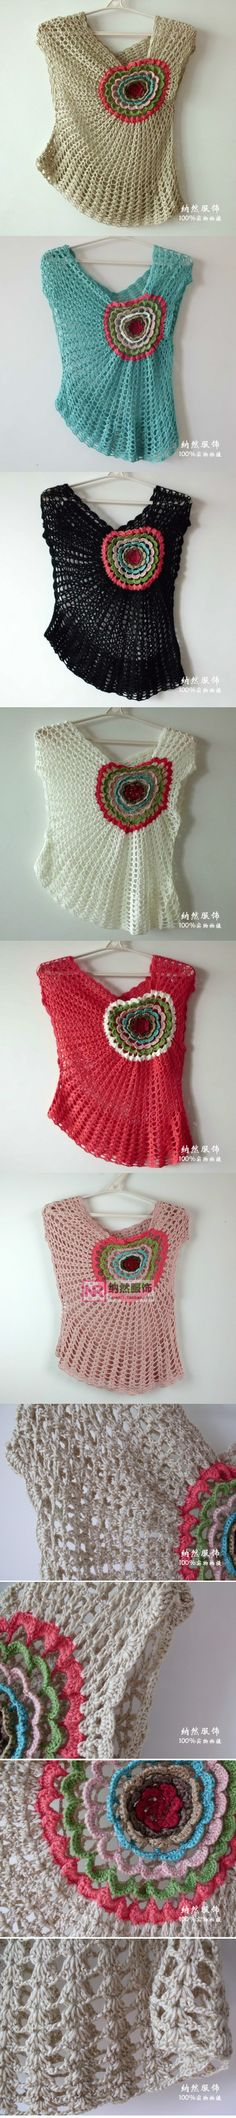 Blusa de verão assimétrica em crochê - photos of crochet tops - Japanese (?) site; many more interesting tops like this on the site